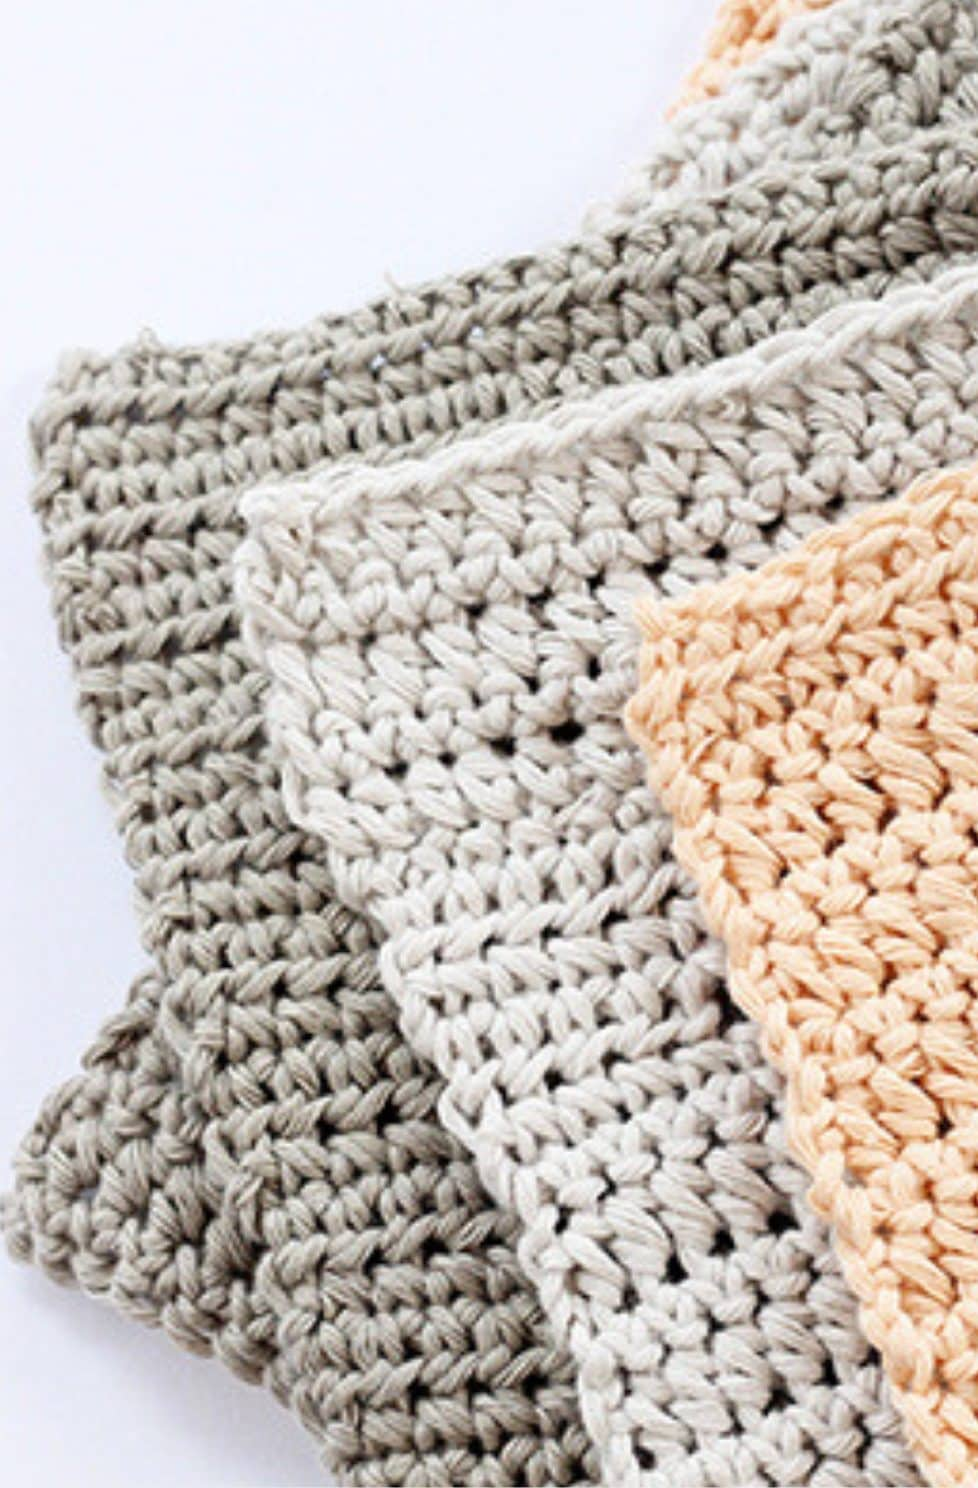 Crochet washcloths